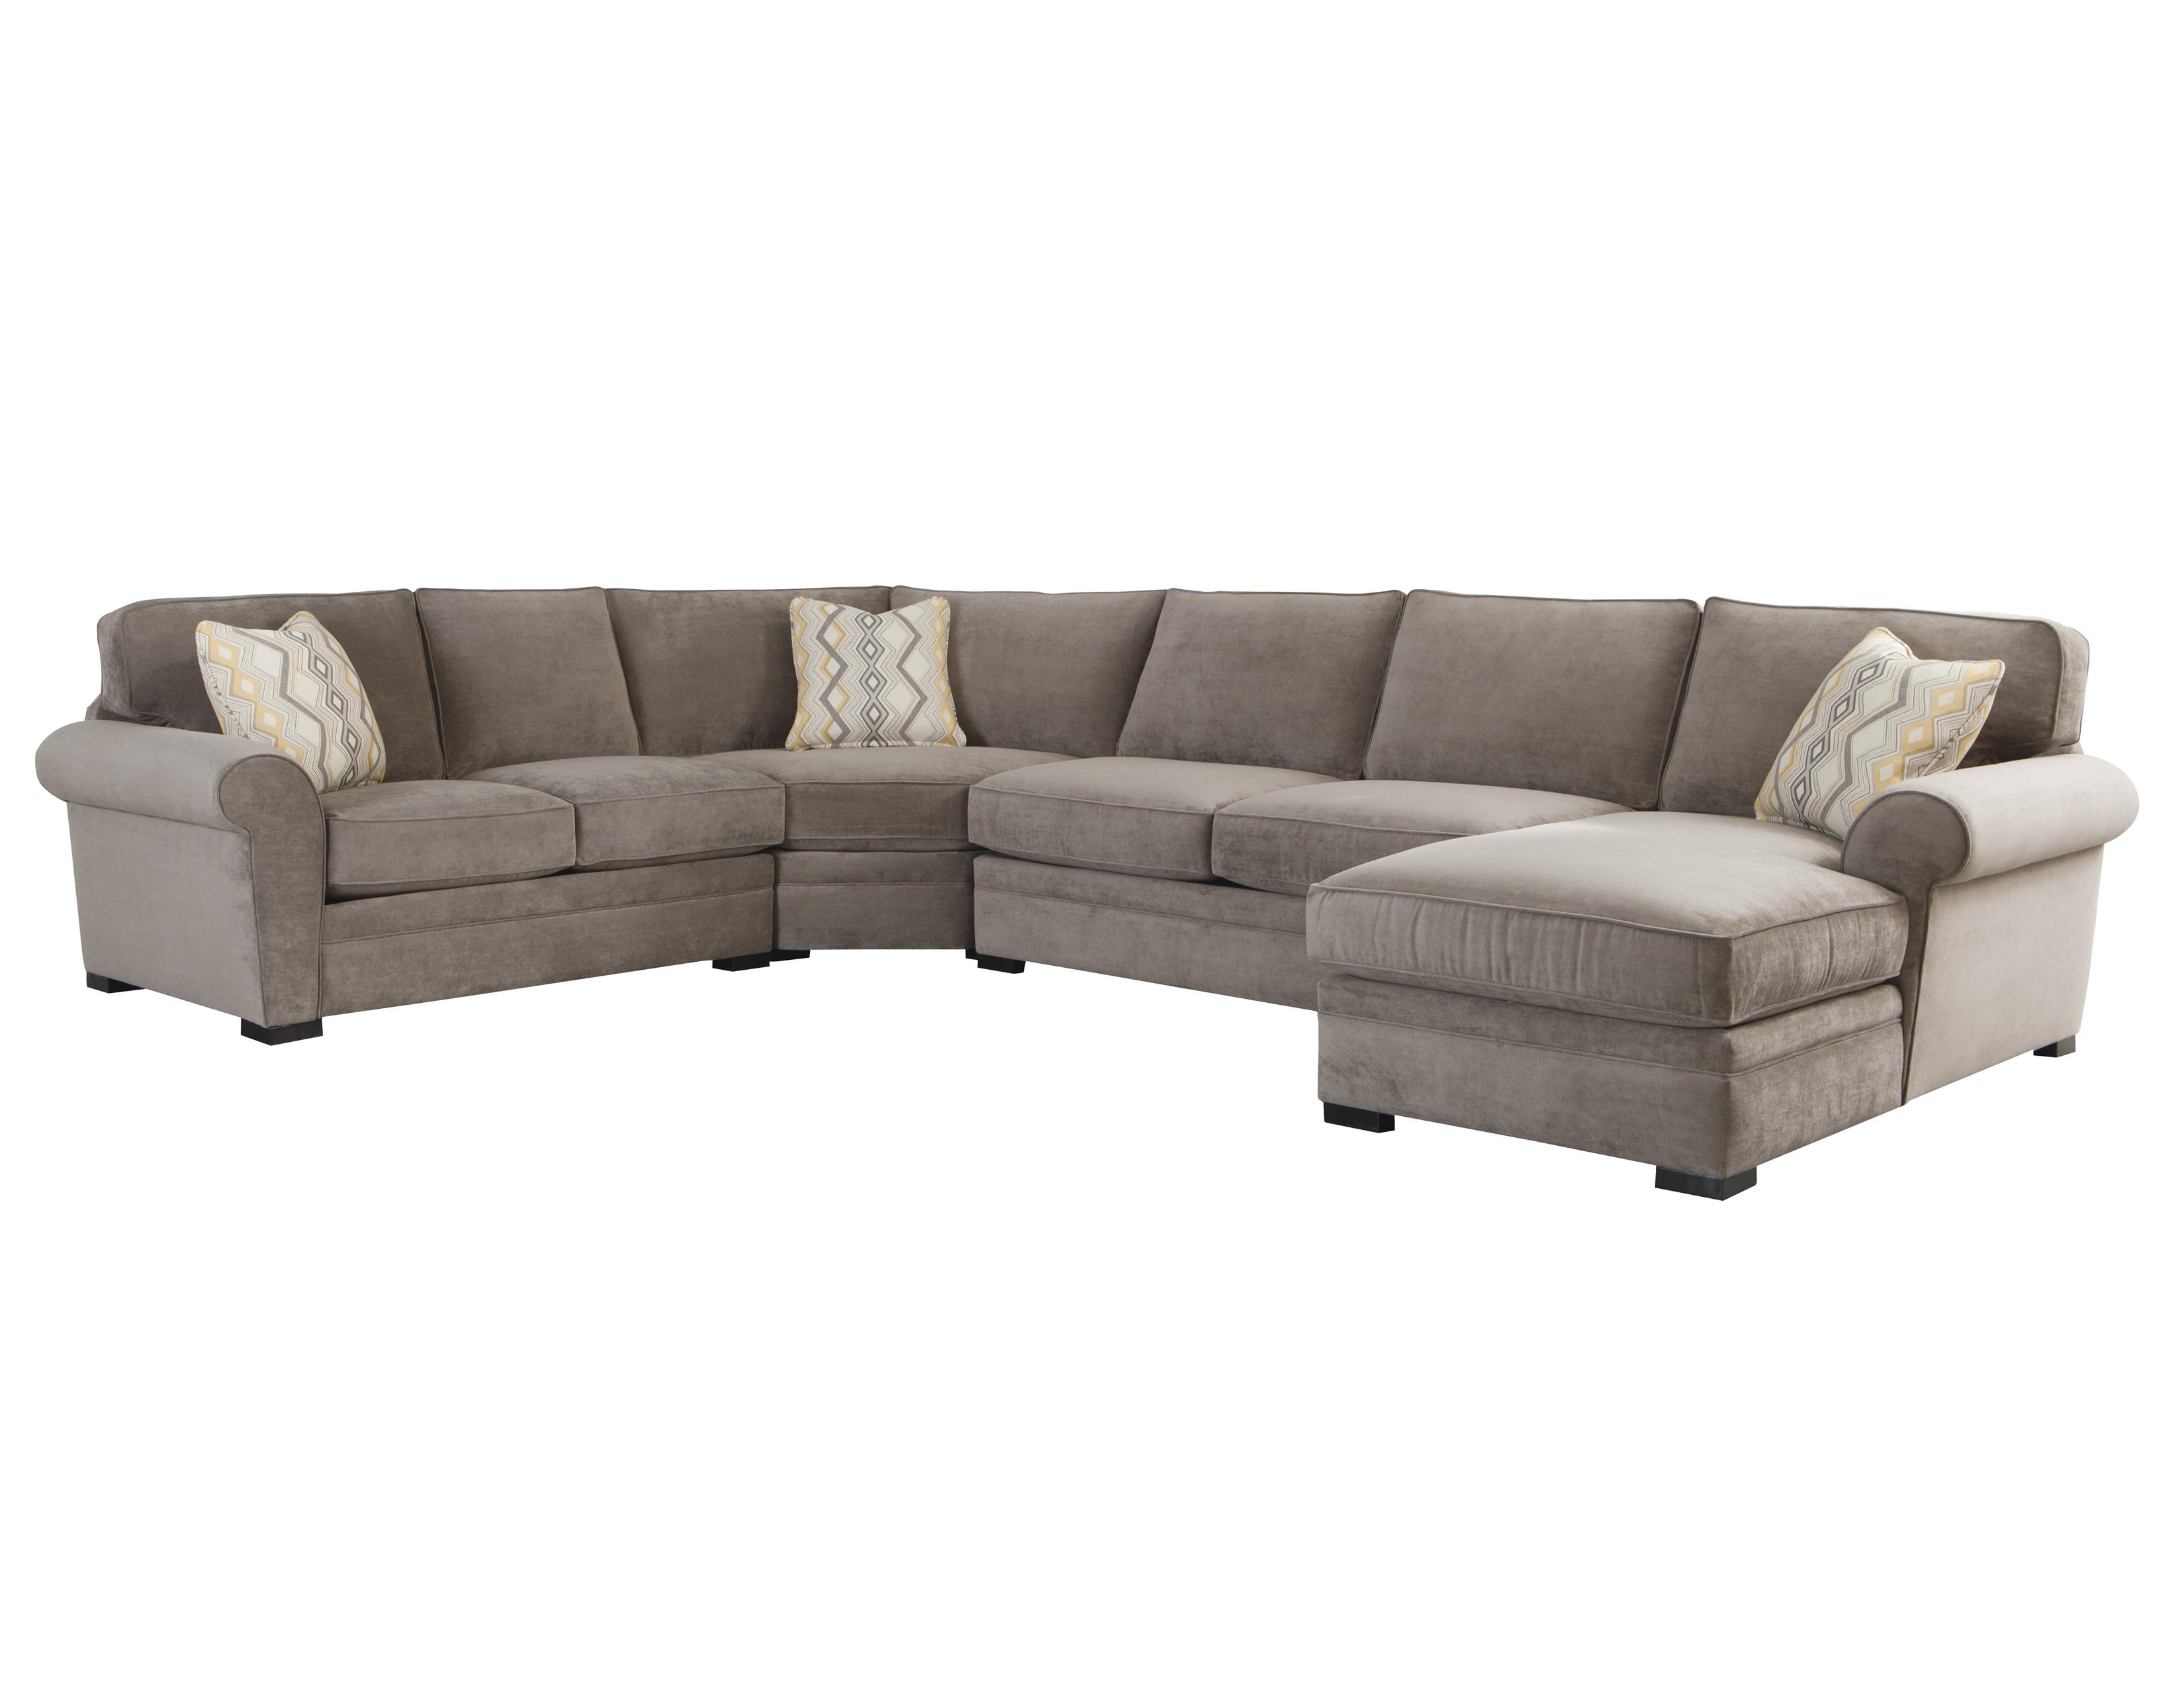 Jonathan Louis Choices - Orion Sectional - HomeWorld Furniture ...